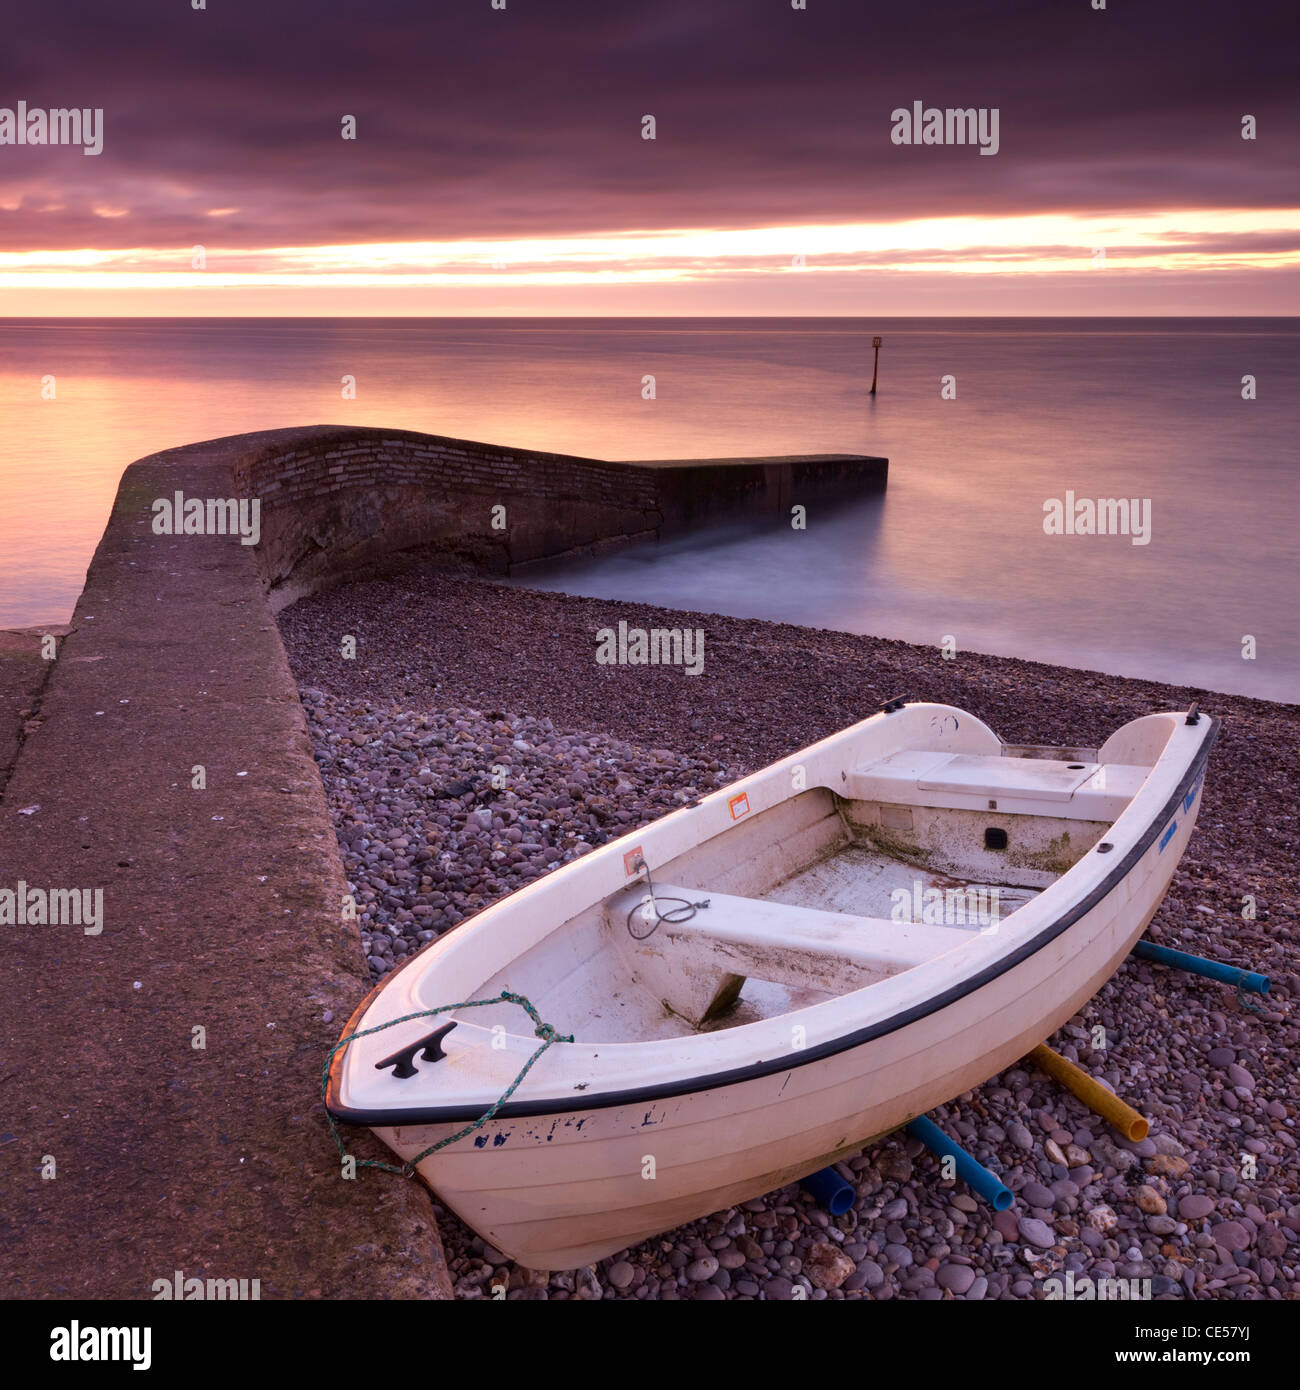 Fishing boat on Sidmouth beach at dawn, Devon, England. Winter (January) 2012. - Stock Image